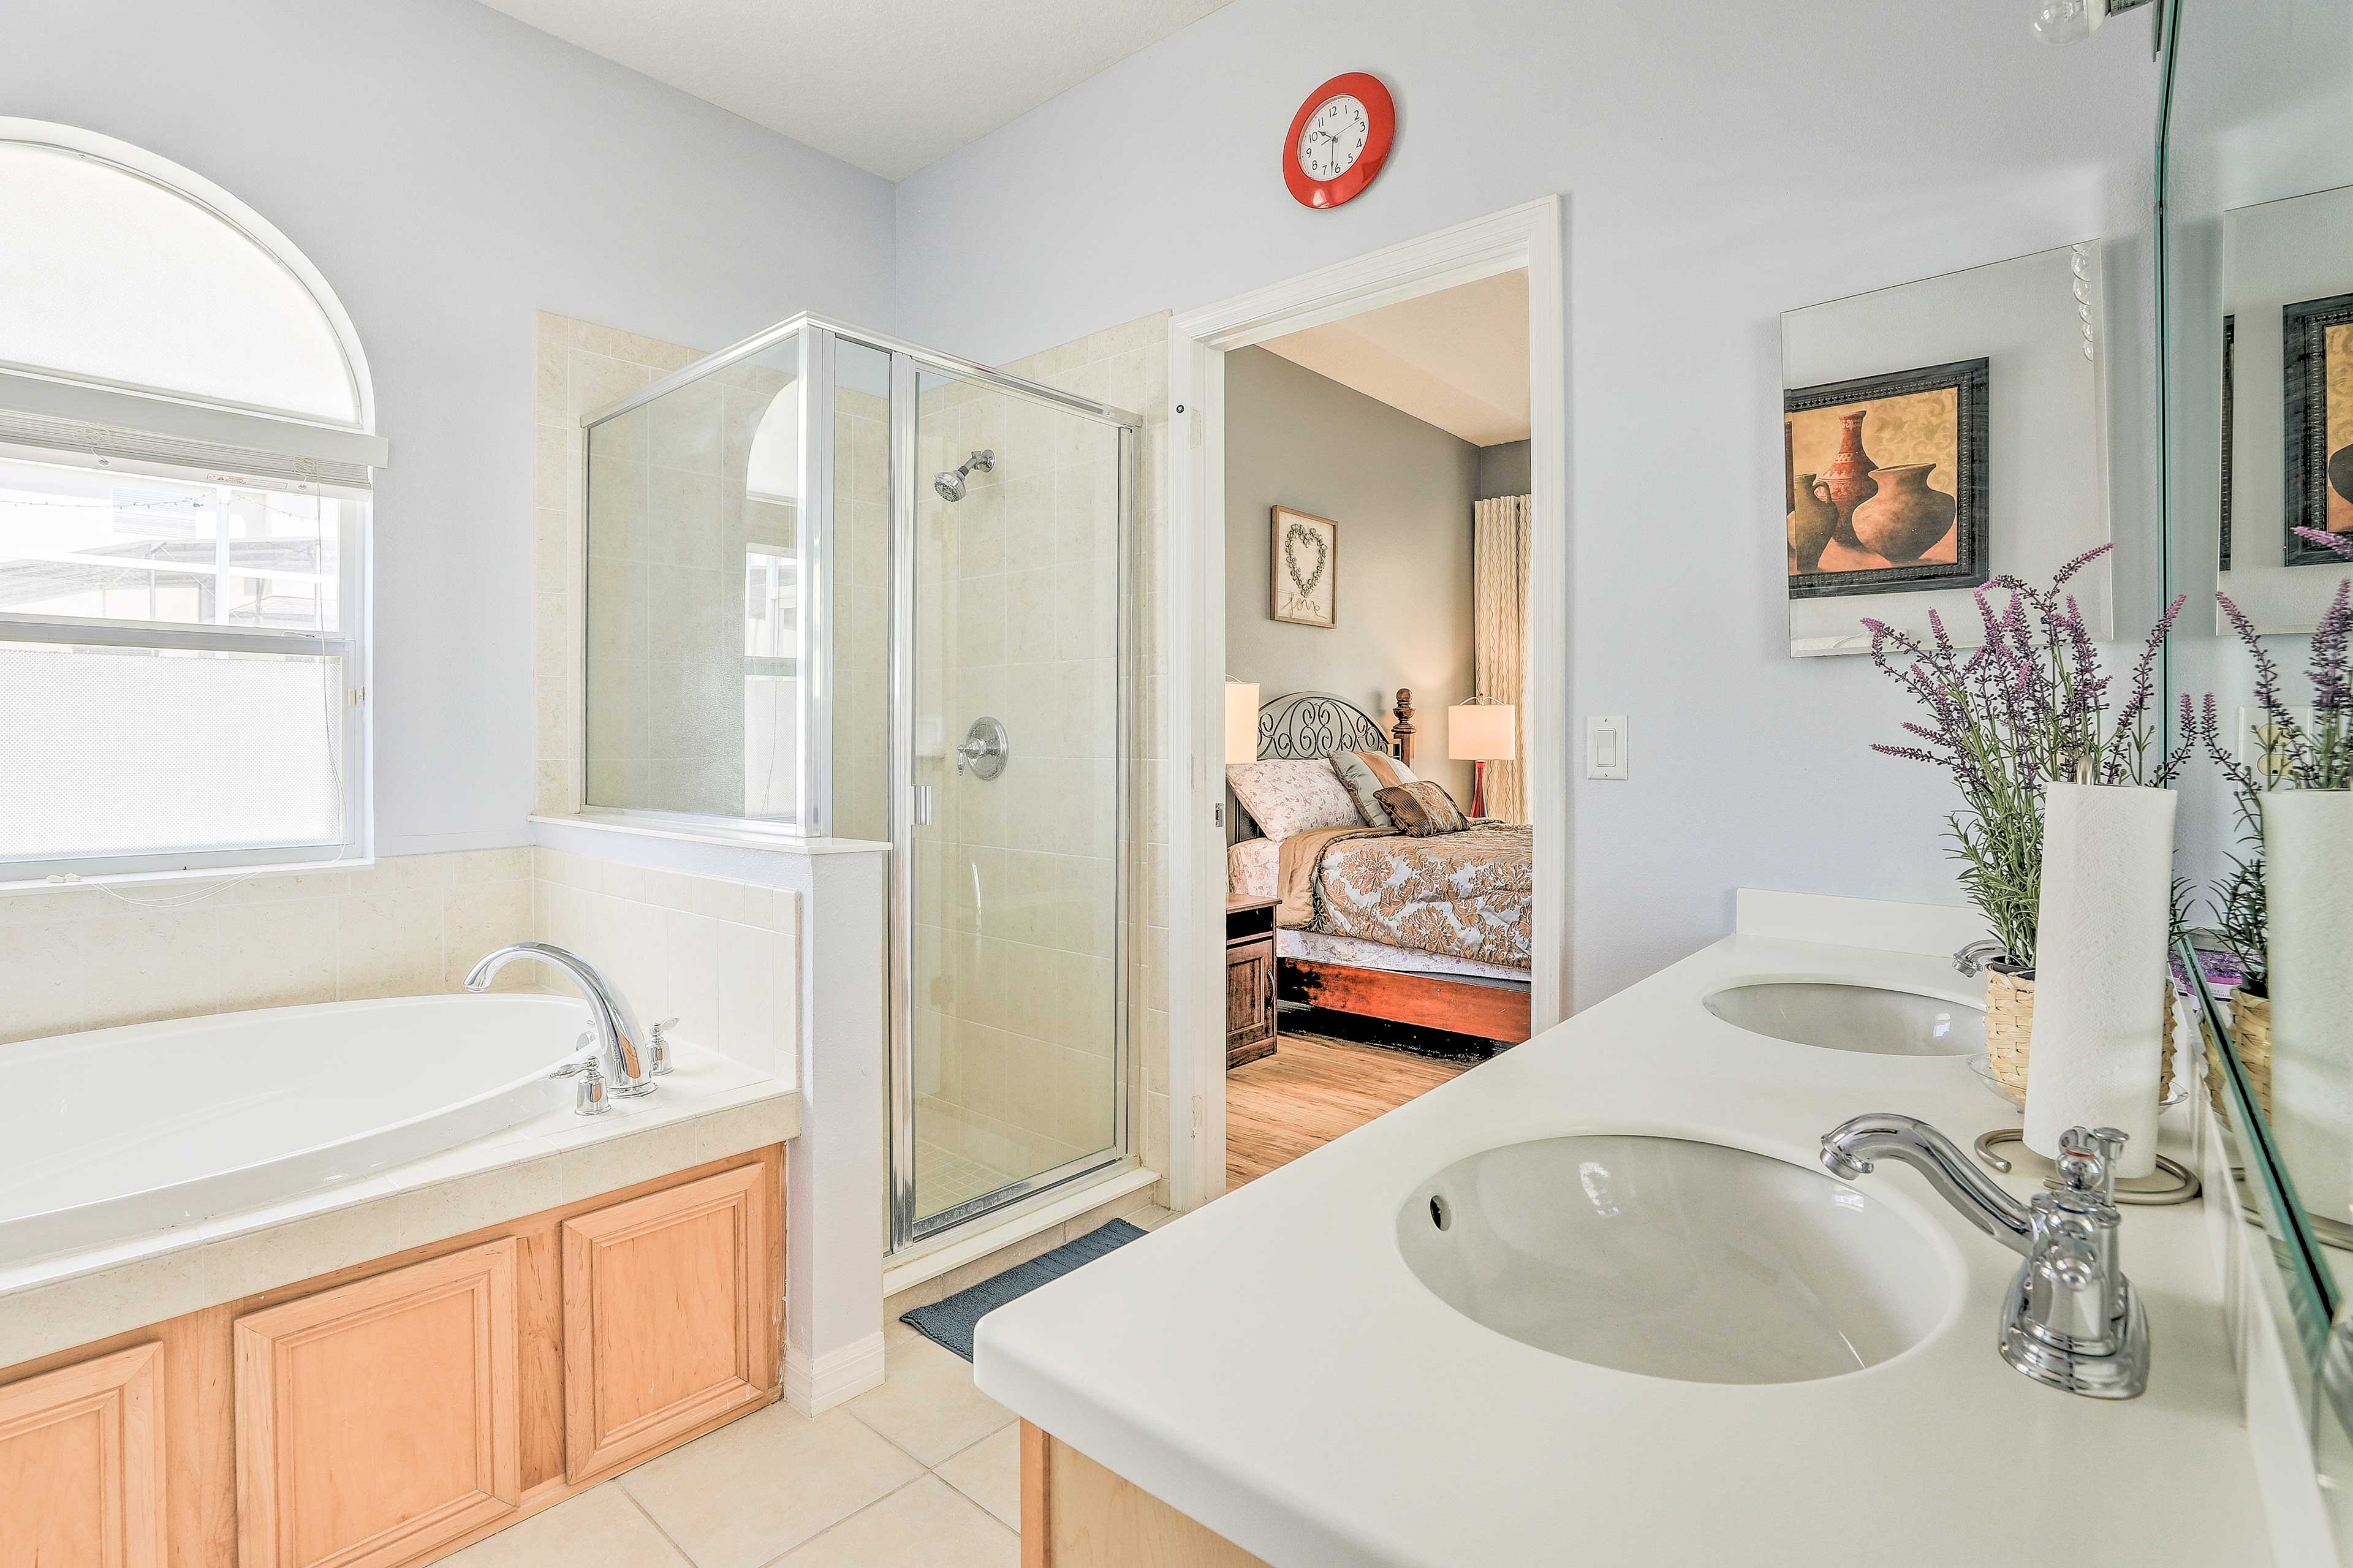 Rinse off in the walk-in shower or take a relaxing soak in the large tub.